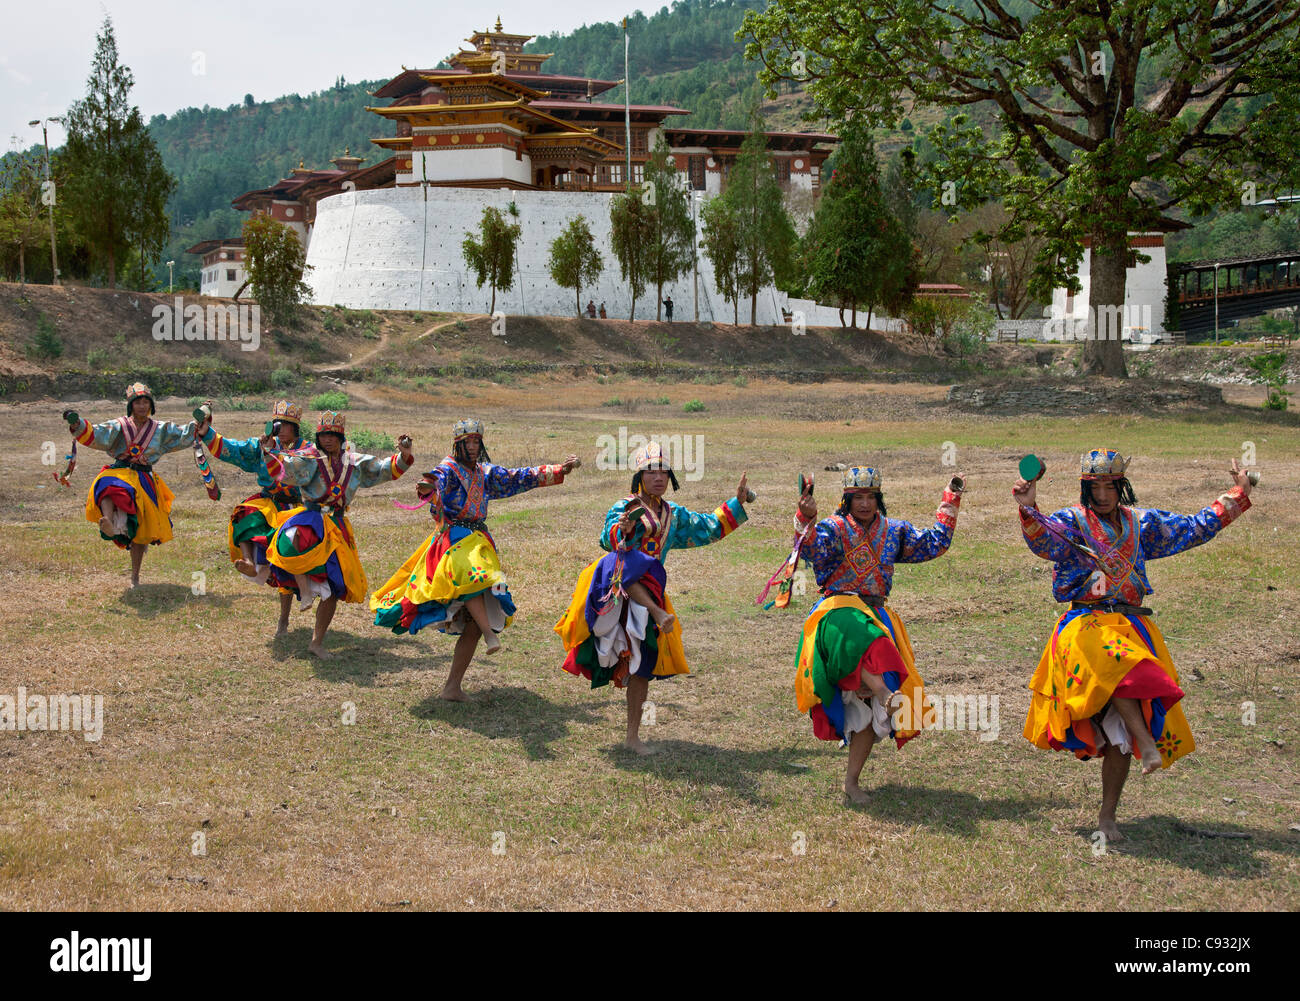 Dancers perform Pa-Cham, the Dance of the Heroes, outside Punakha Dzong. - Stock Image